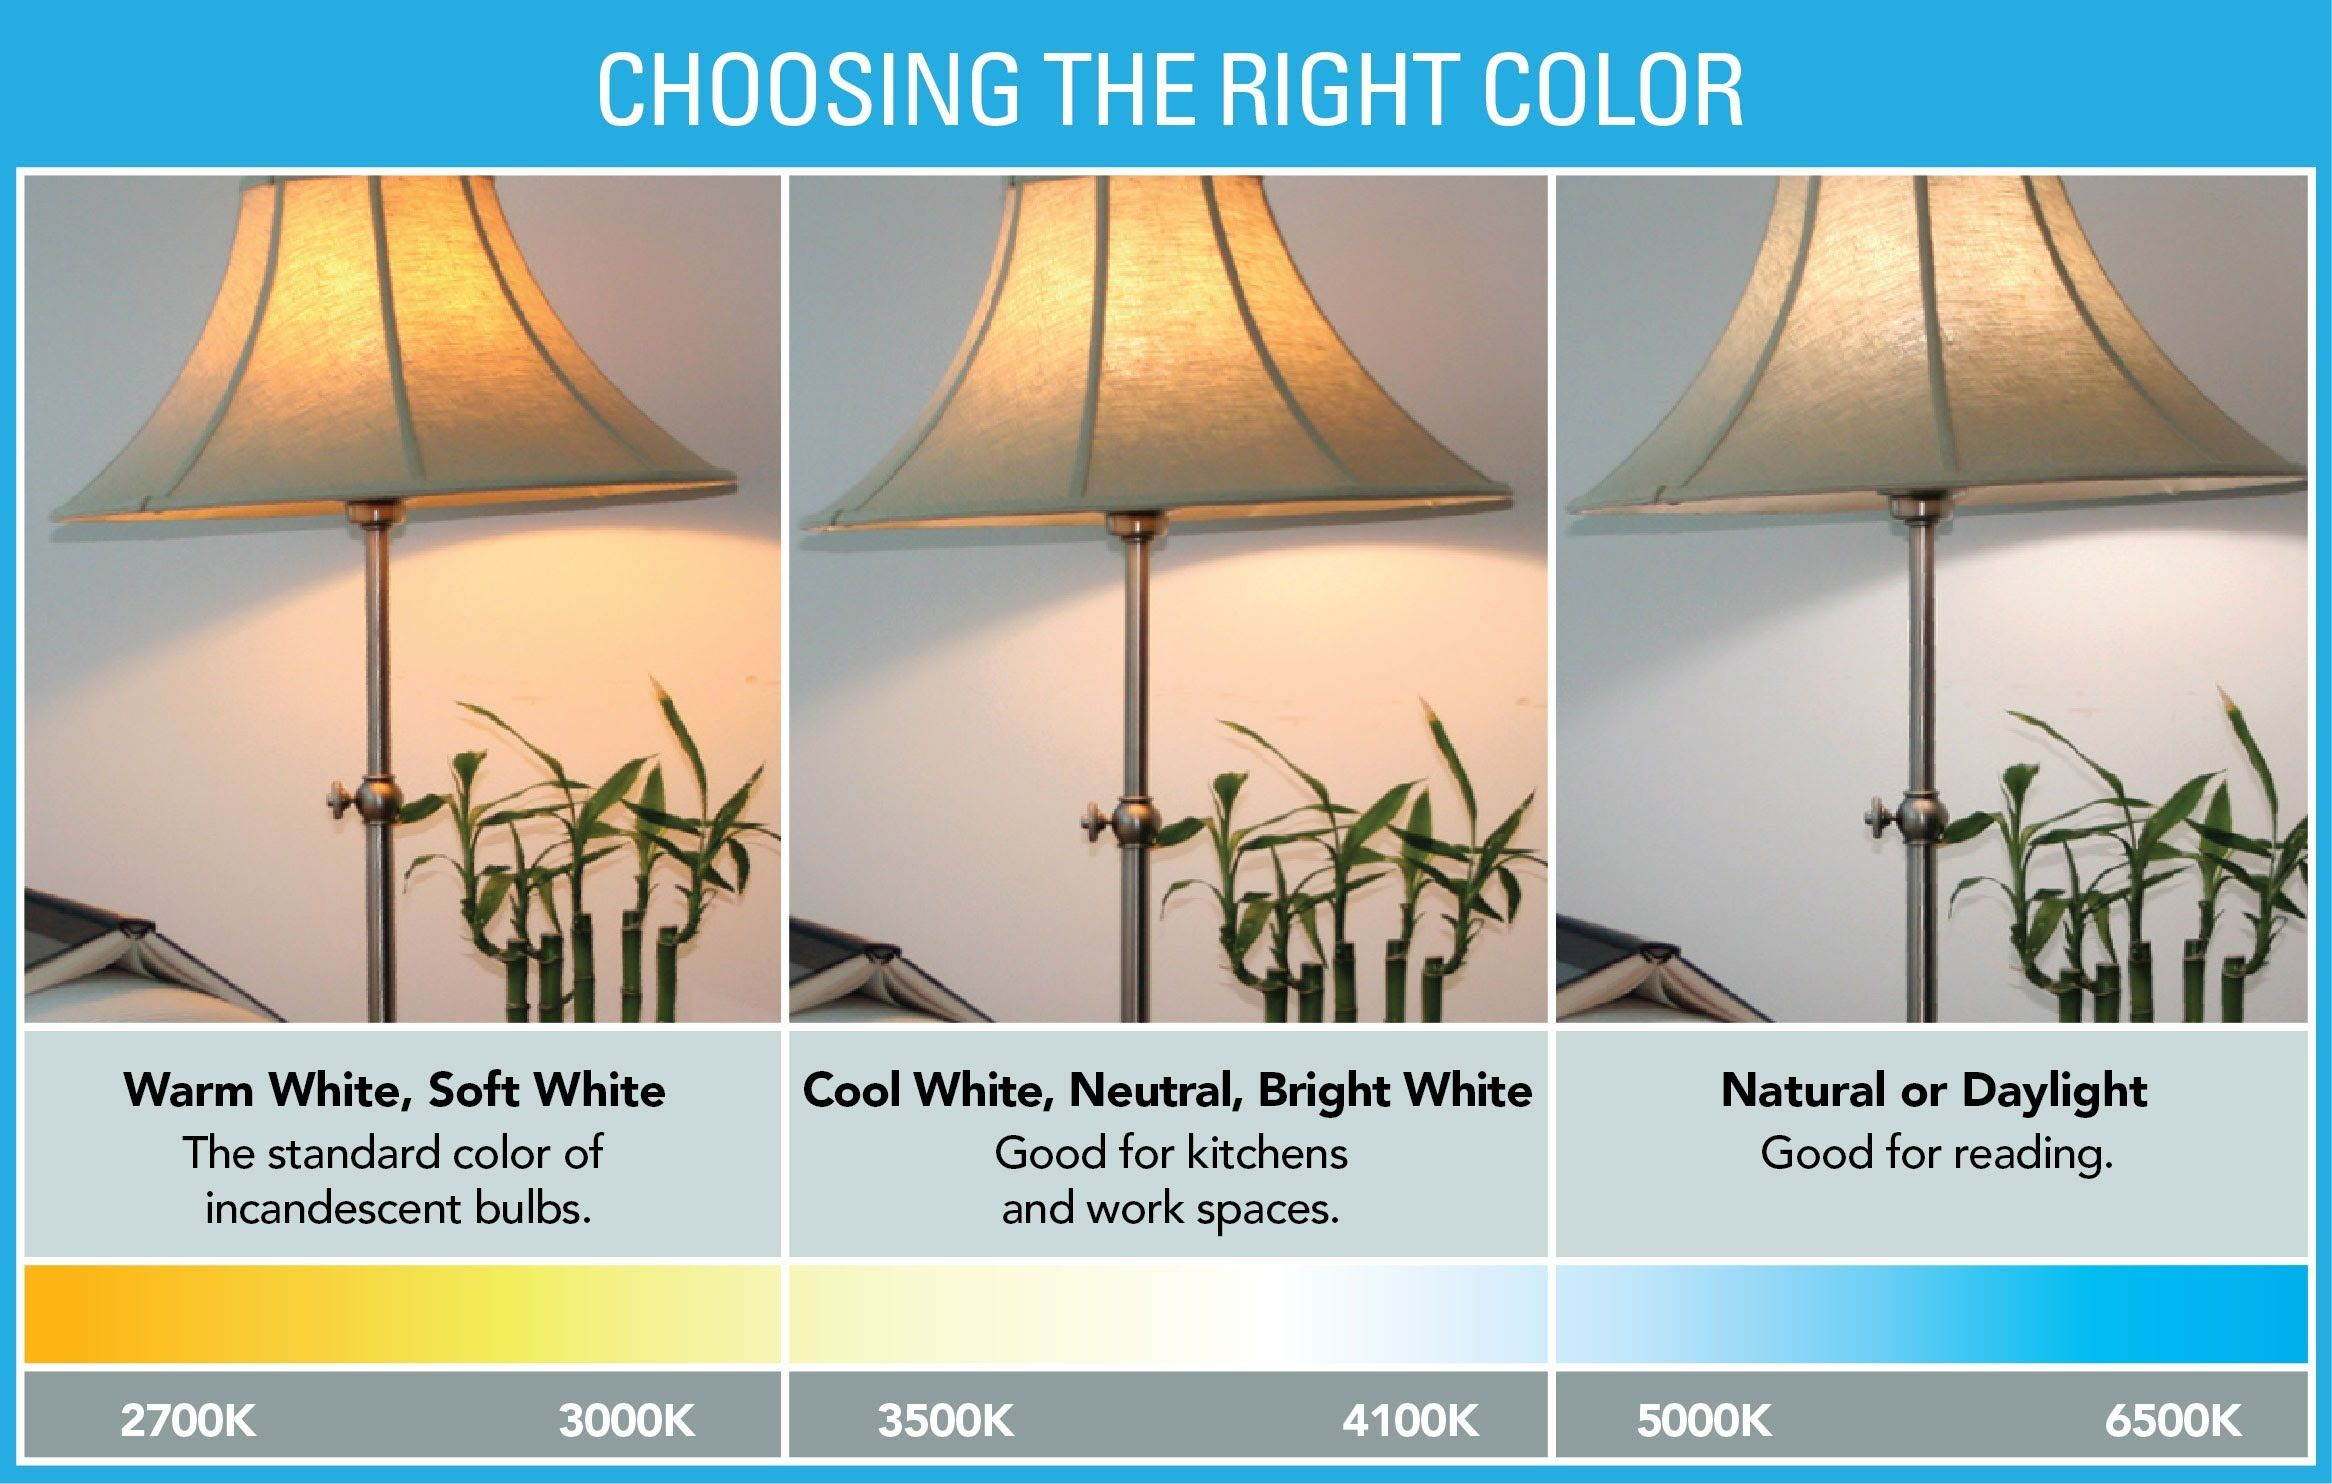 Asktheexpert How To Choose A Light Bulb Need Some Help Purchasing New Light Bulbs For Your Home Buying An Energ White Light Bulbs Choosing Light Bulbs Bulb